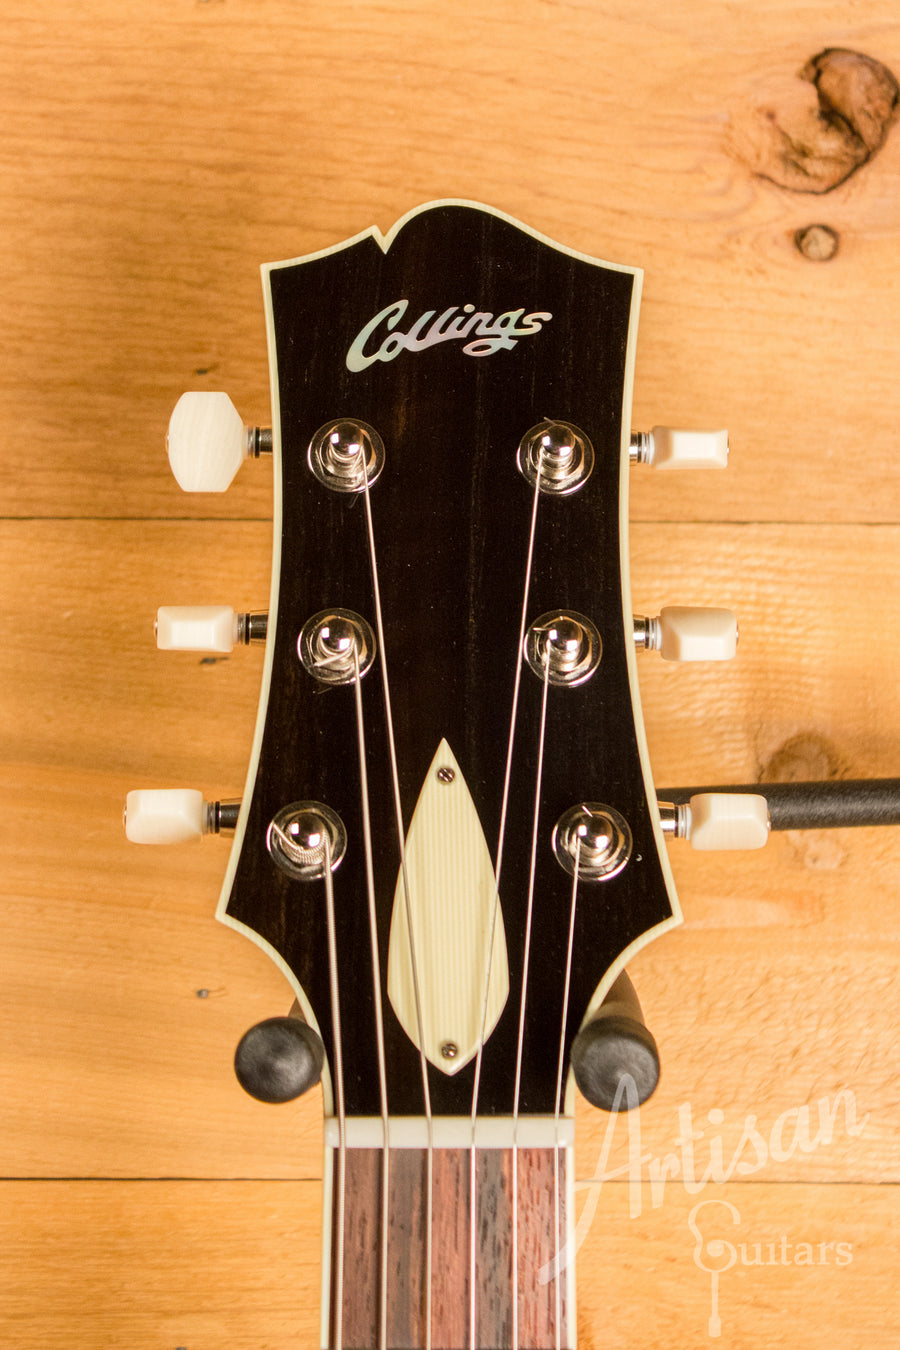 Collings I 35 Deluxe Guitar Tobacco Sunburst and Dual Lollar Low Wind Imperial Humbuckers ID-10825 - Artisan Guitars